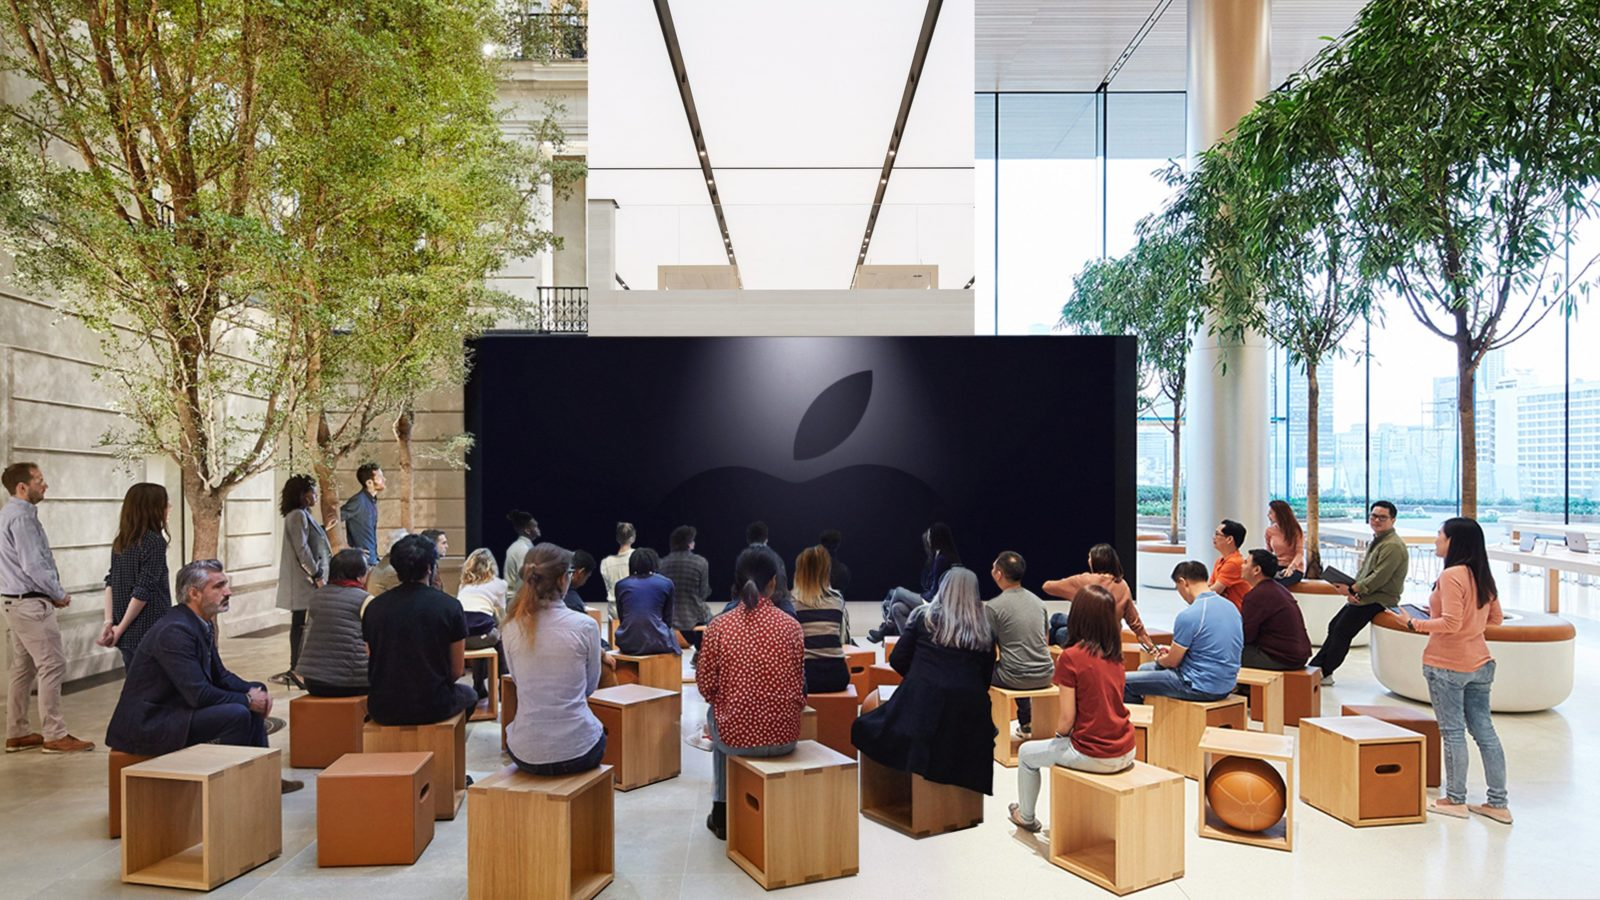 Come le finali di Champions, l'evento Apple 25 marzo si segue sul maxi schermo negli Apple Store